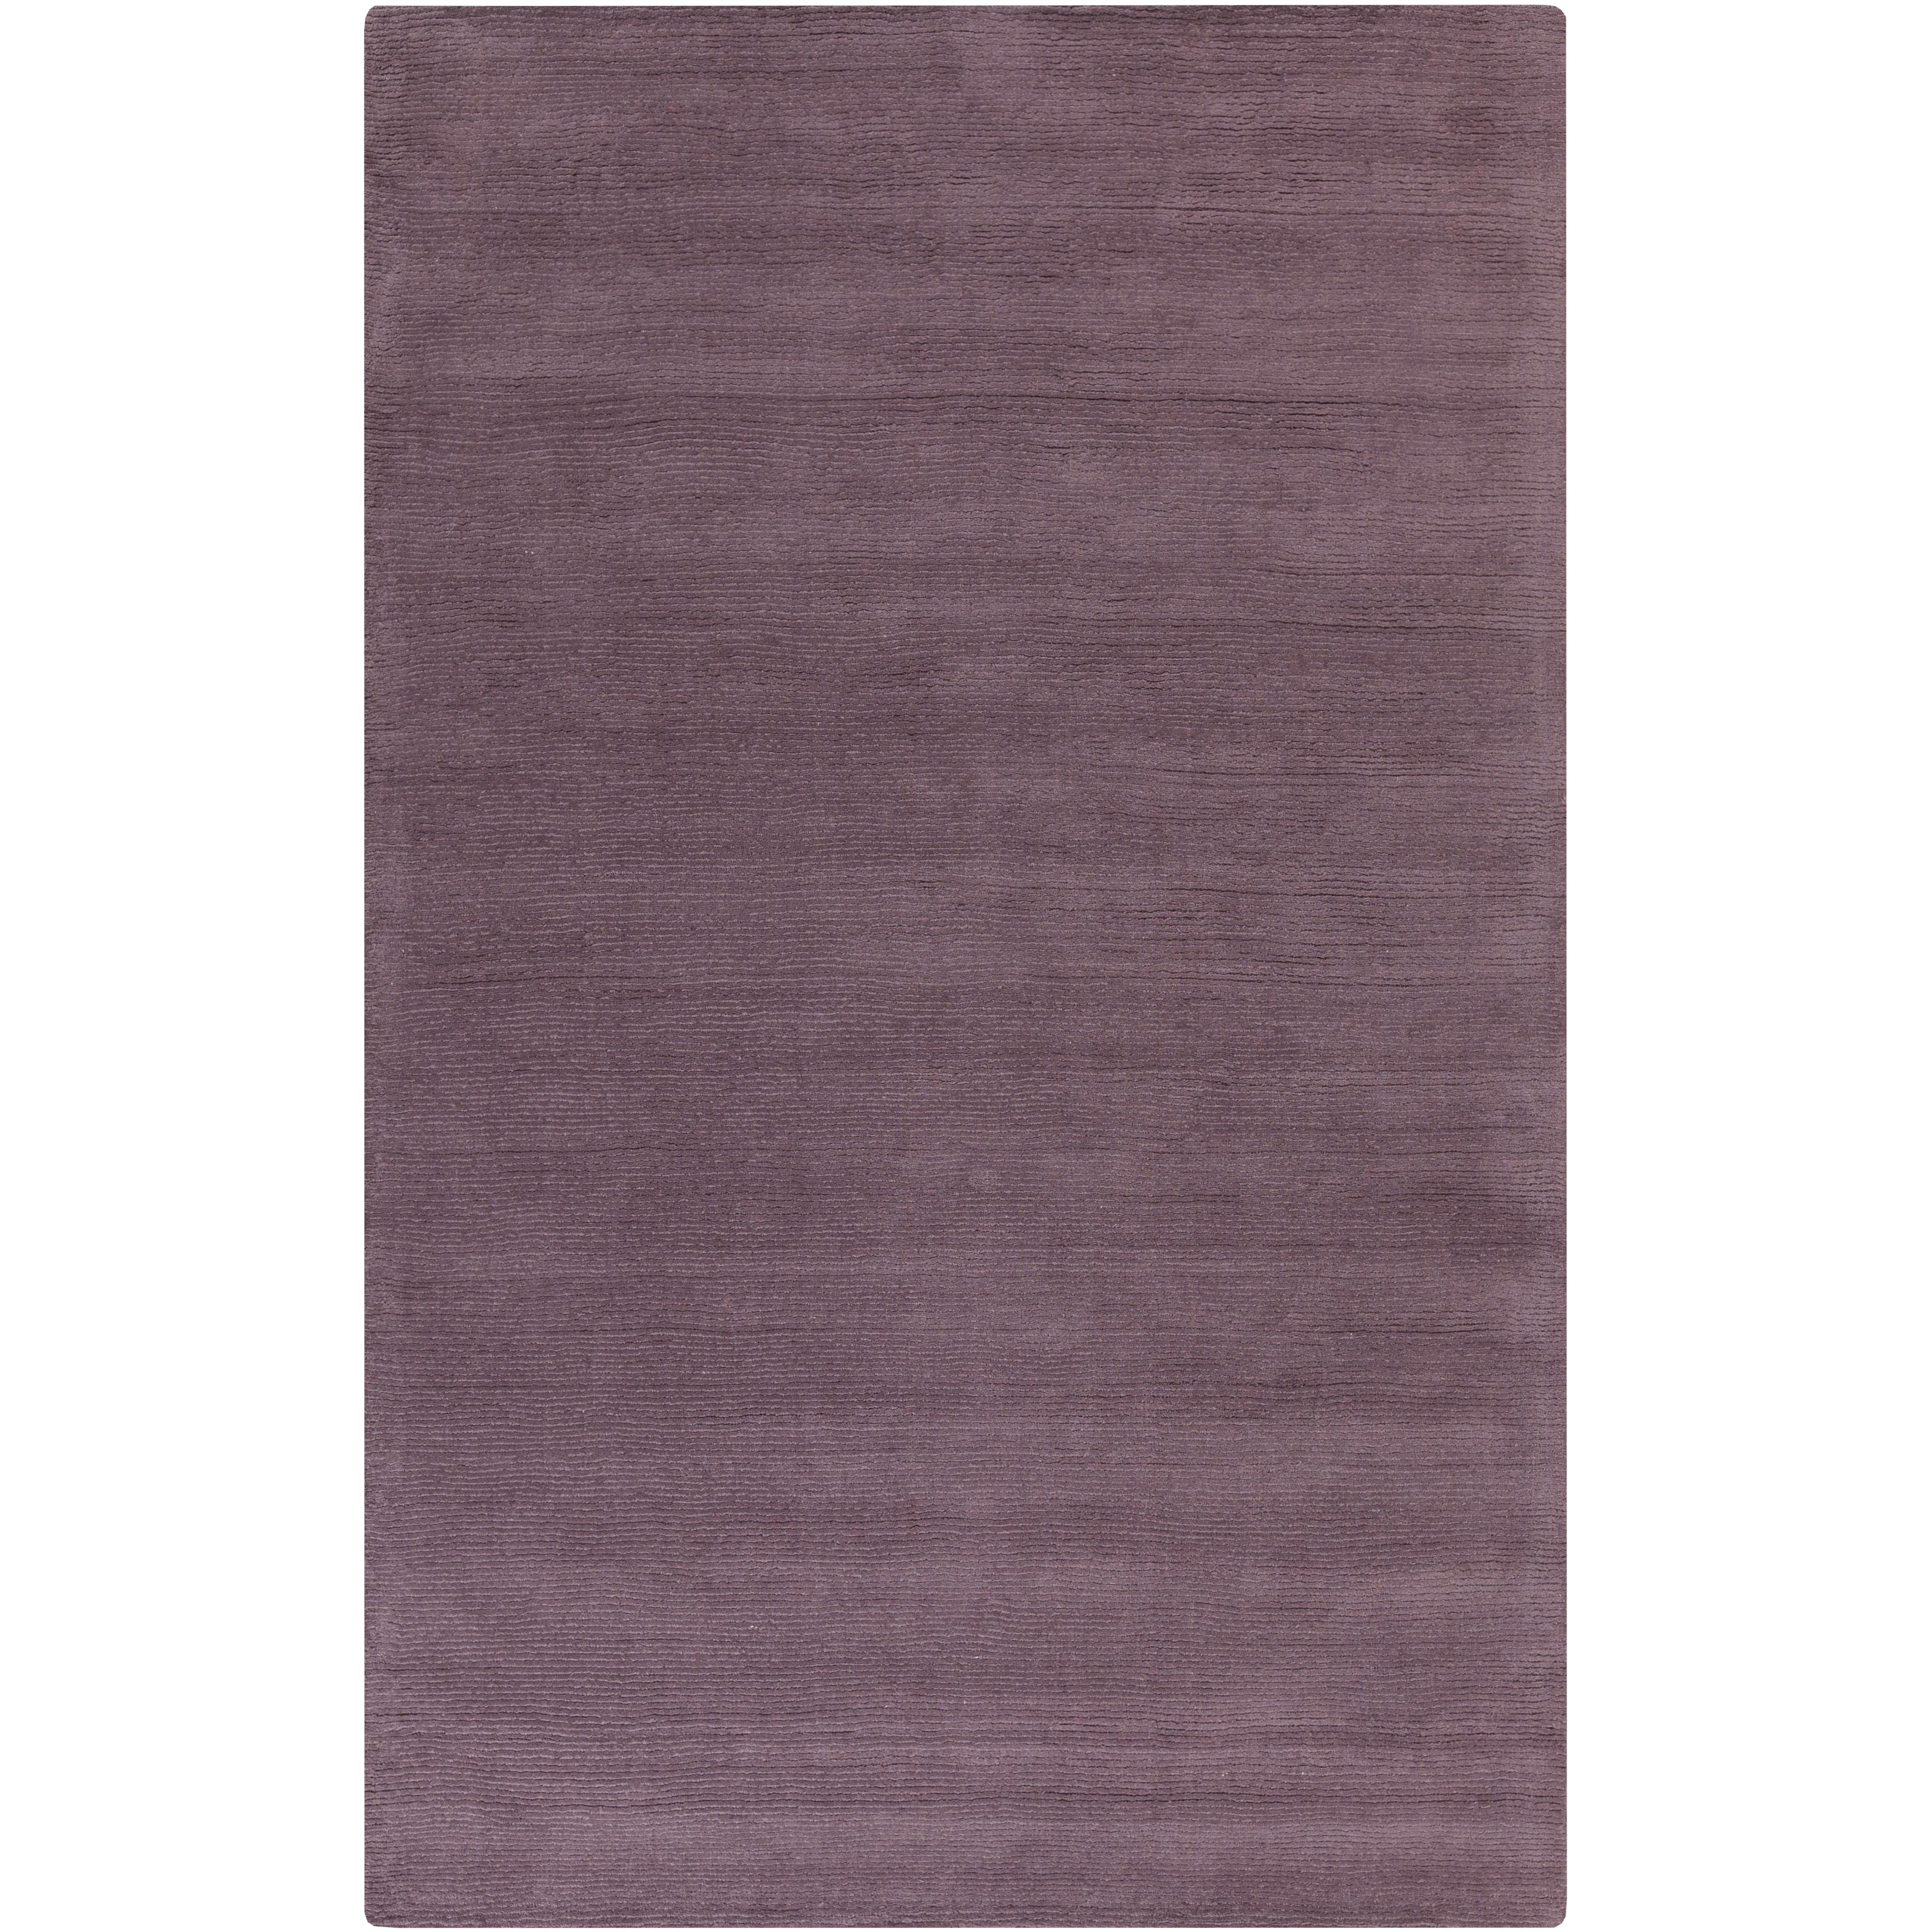 Surya Rugs Mystique 12' x 15' - Item Number: M5329-1215